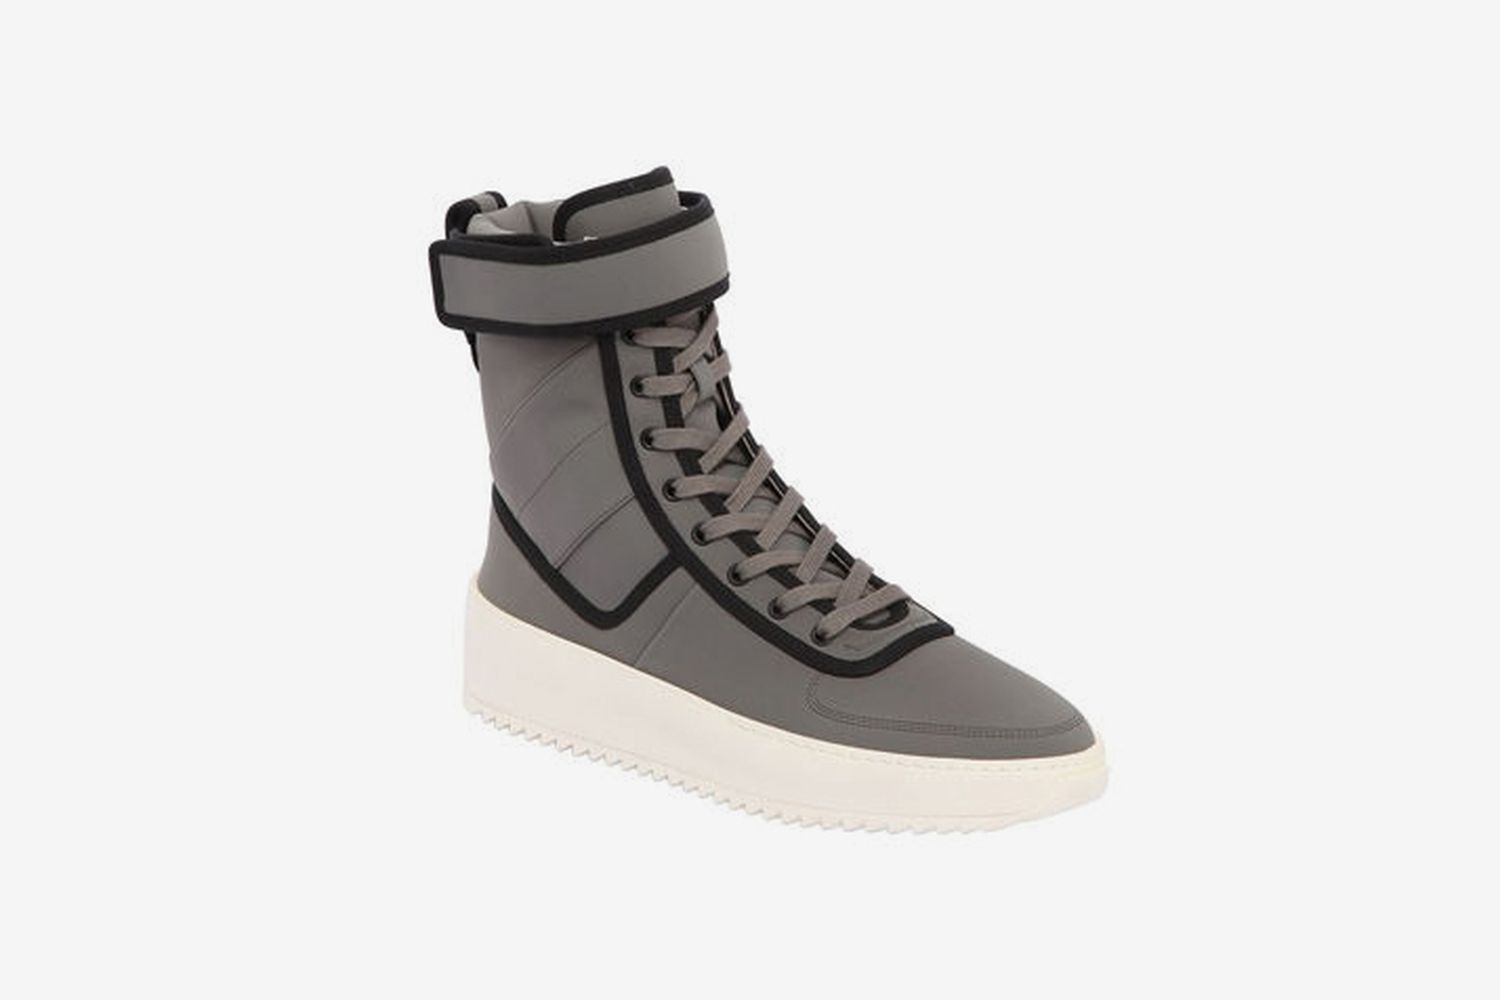 Military High Top Sneakers